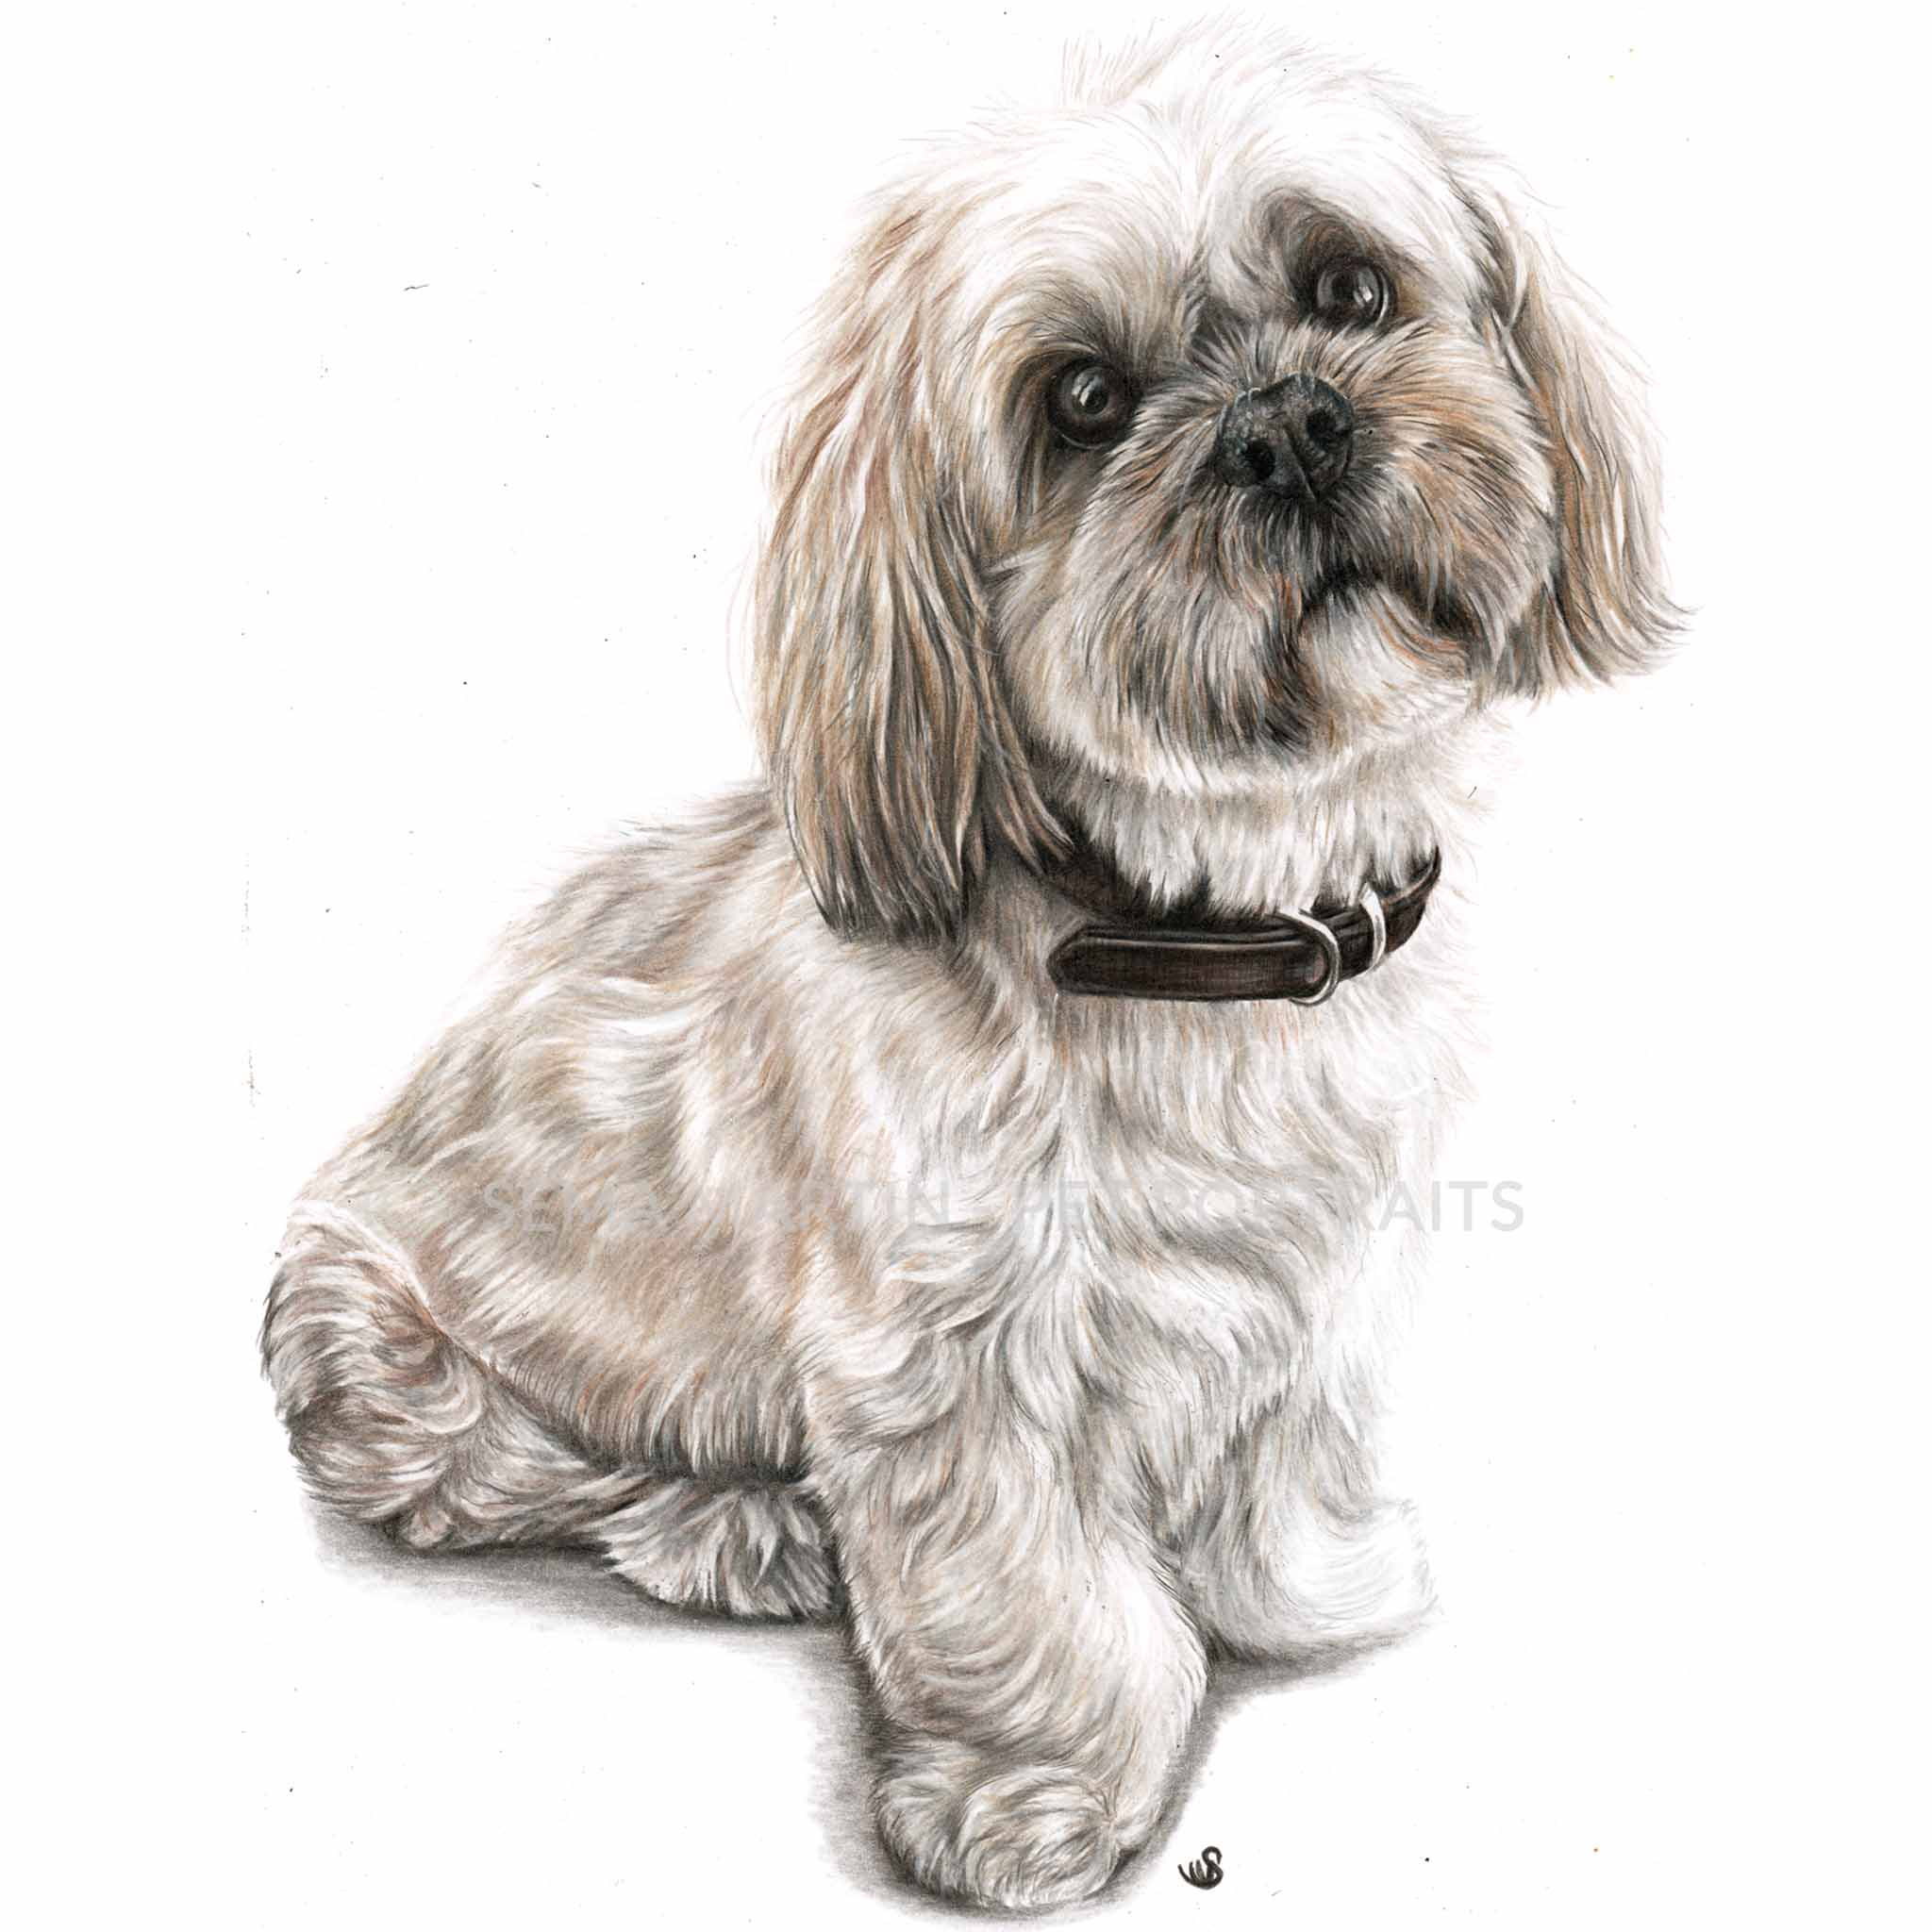 Copy of 'Ruby' - UK, 8.3 x 11.7 inches, 2019, Colour Pencil portrait of a Lhasa Apso